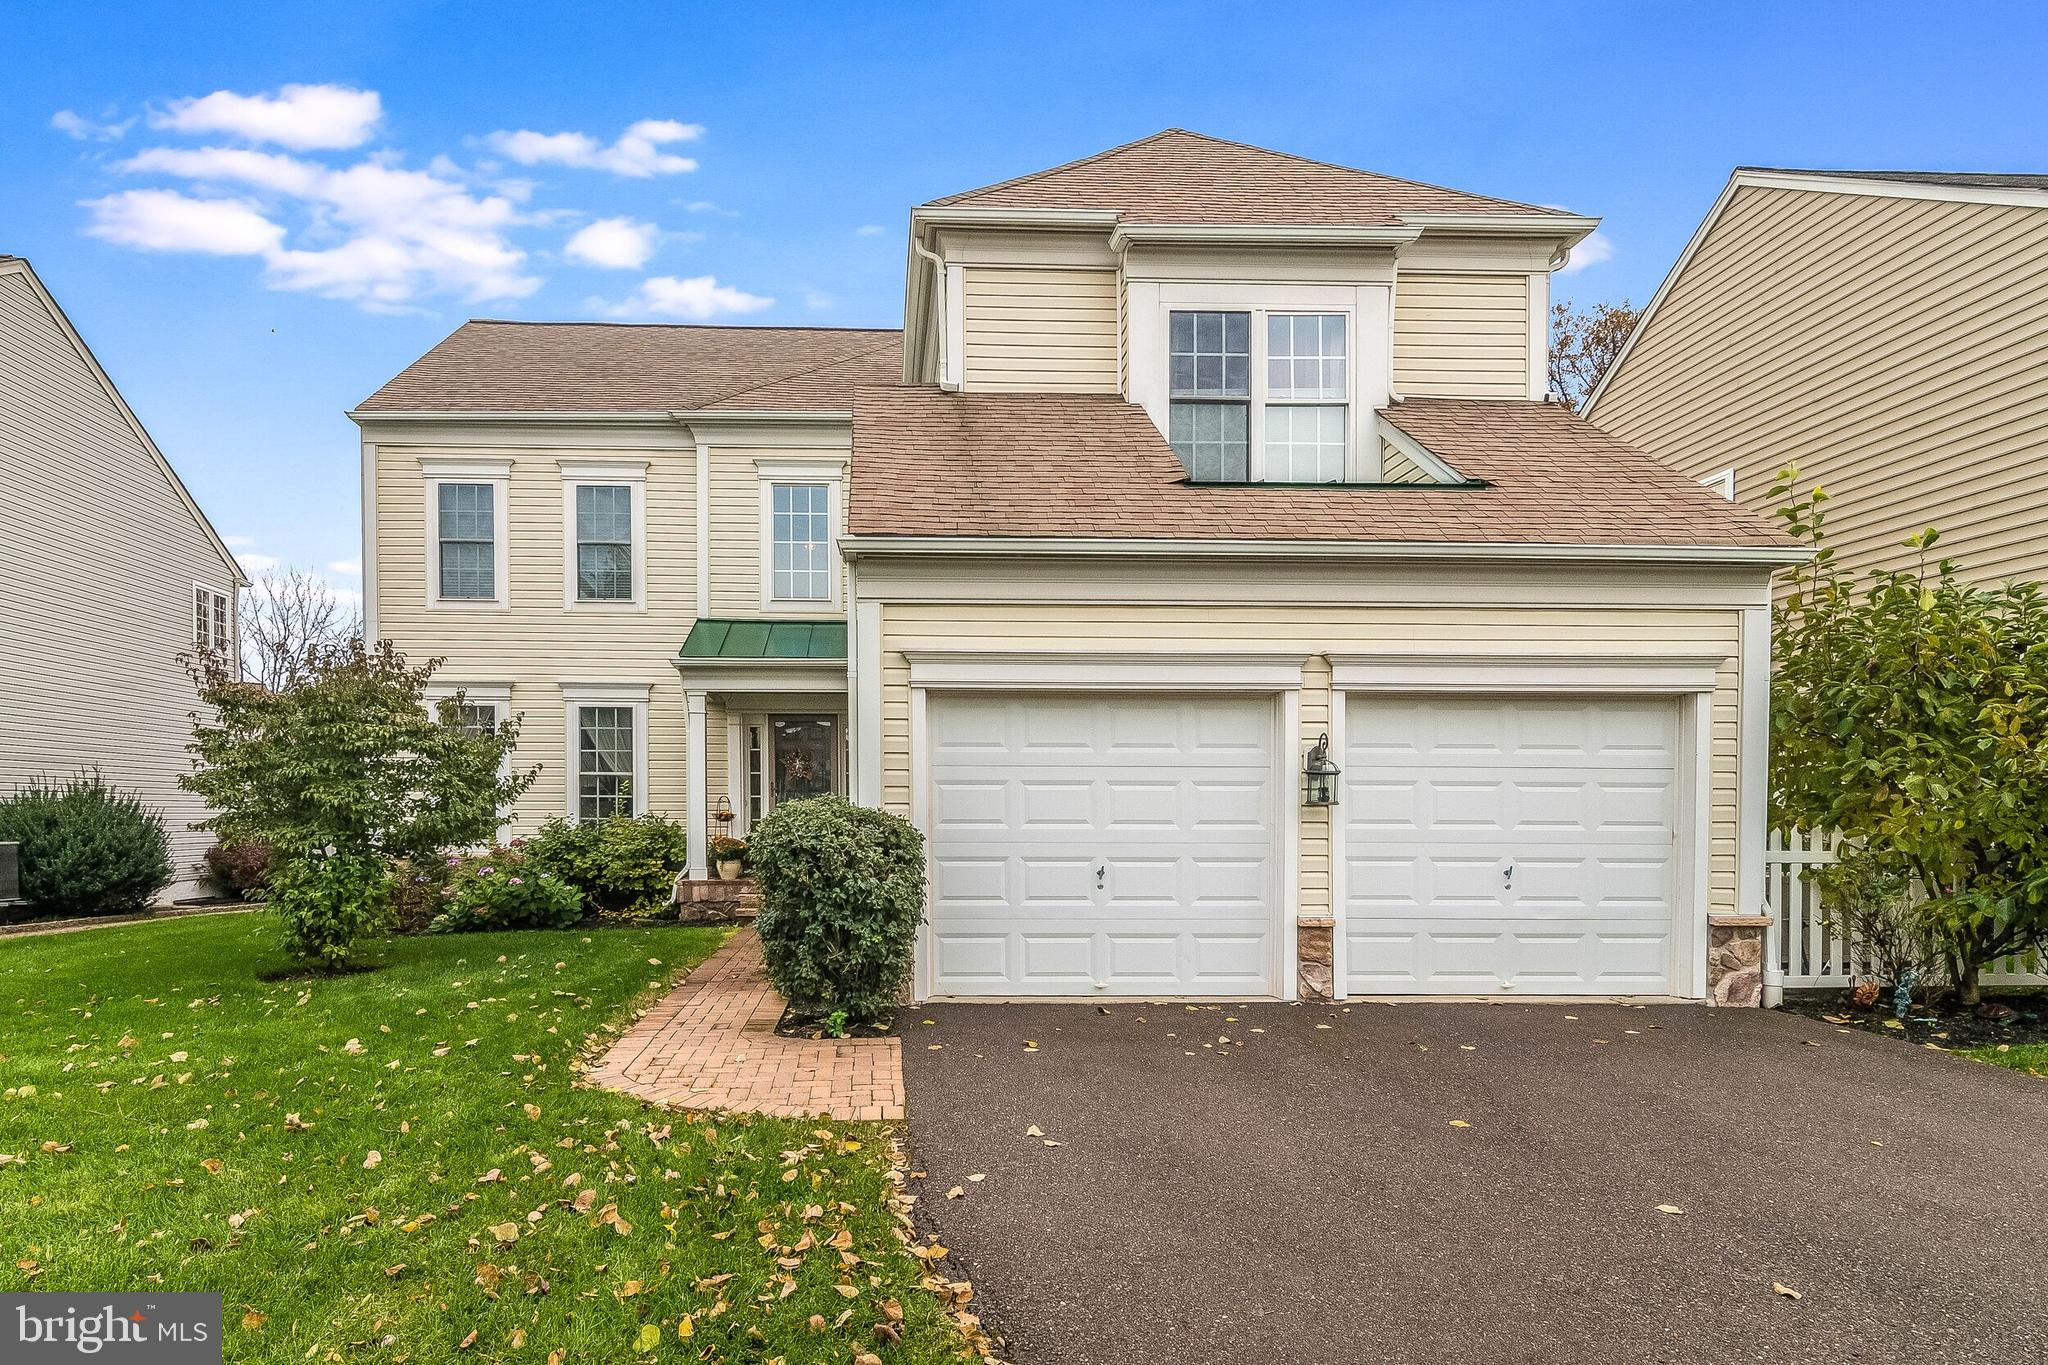 507 SHOEMAKER DRIVE, FOUNTAINVILLE, PA 18923